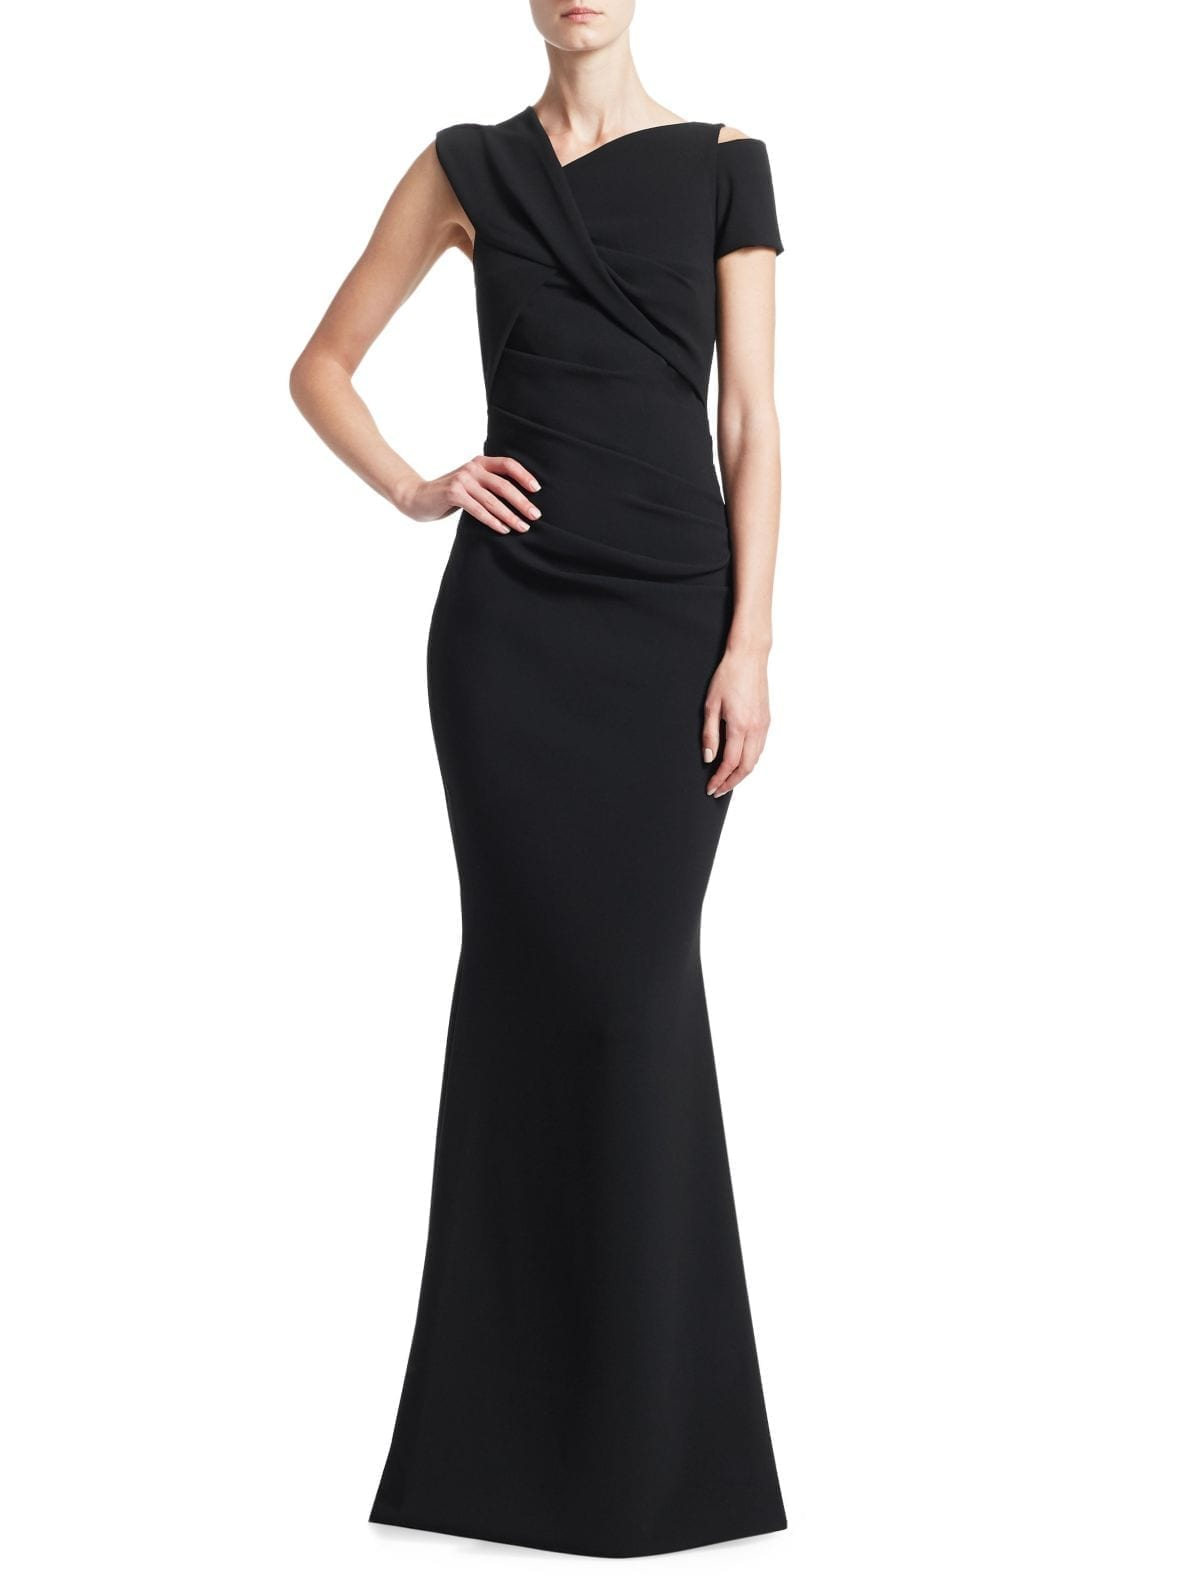 TALBOT RUNHOF Stretch Crepe Mermaid Black Gown